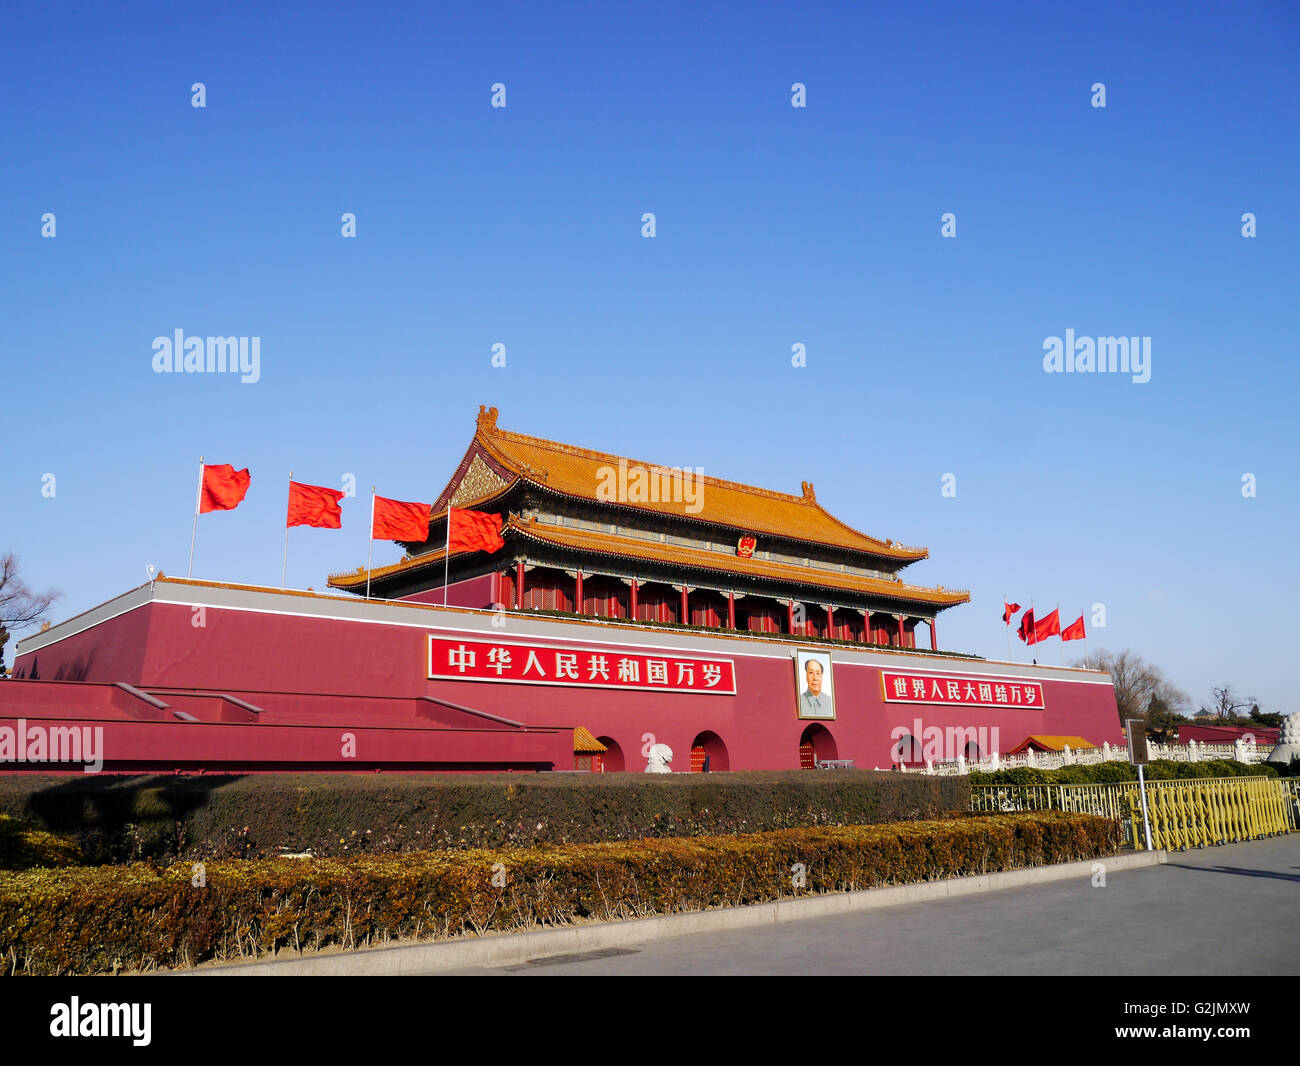 Tiananmen, The Gate of Heavenly Peace, Beijing, China. - Stock Image